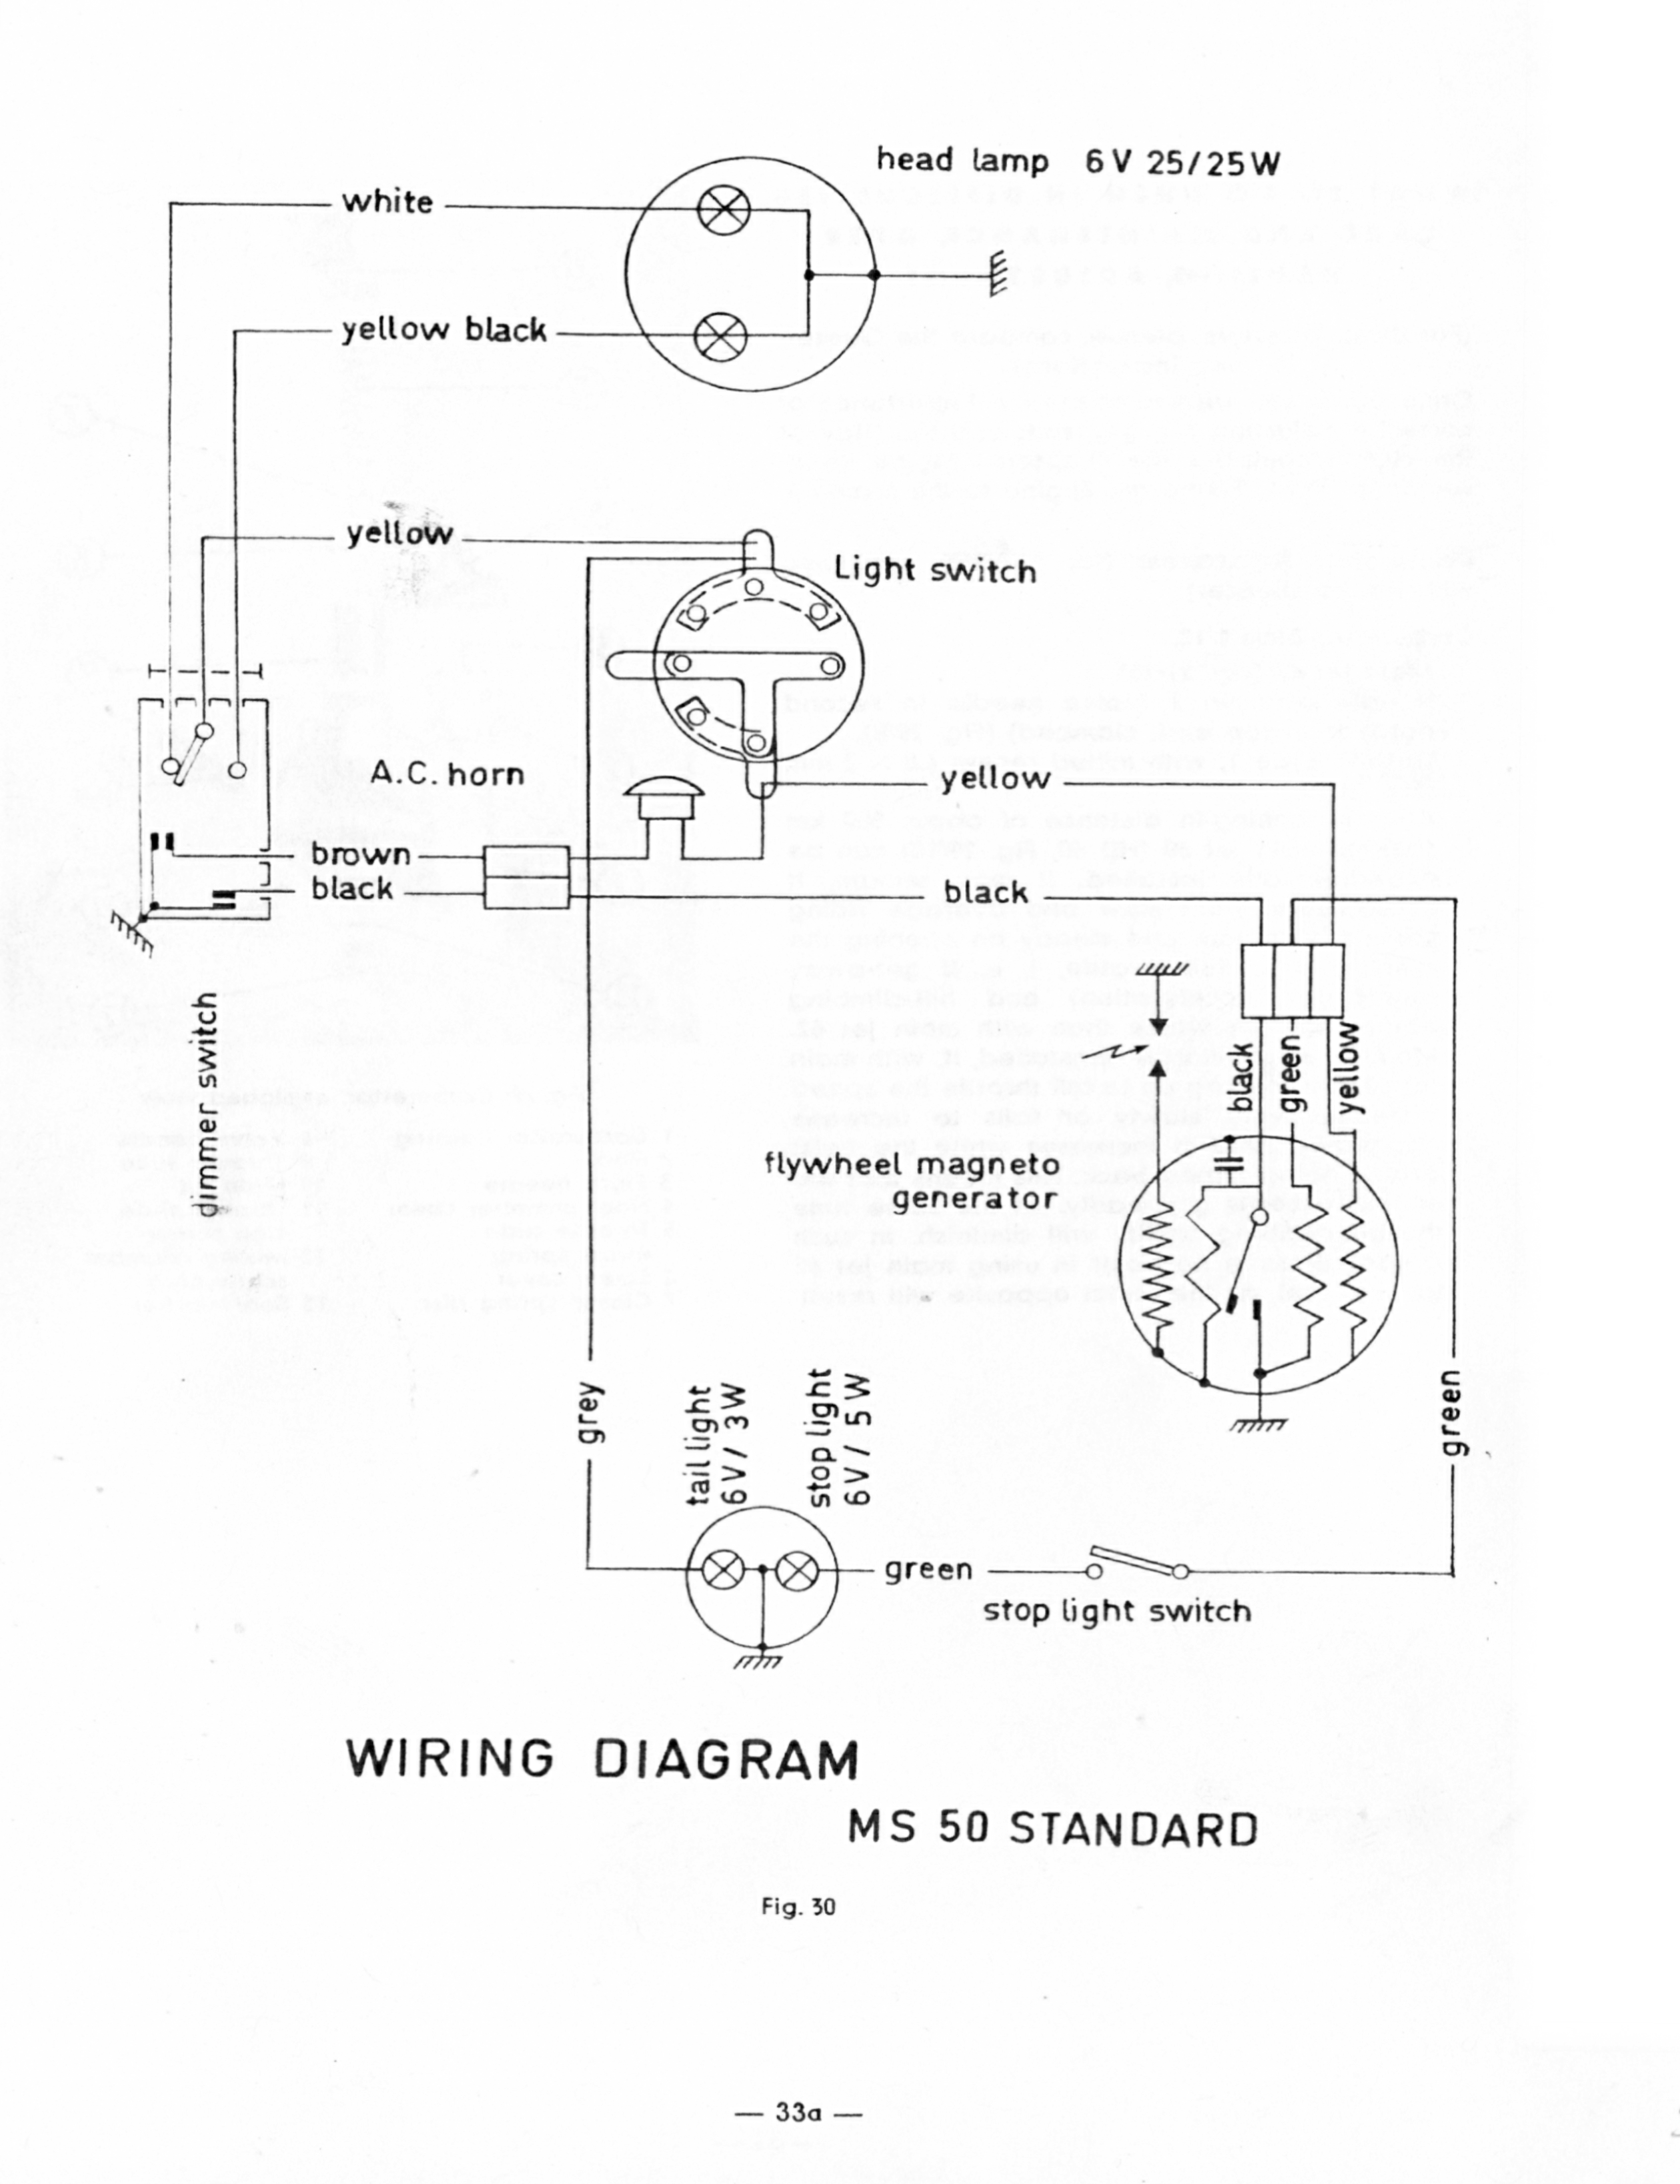 [DIAGRAM_1CA]  Puch wiring diagrams - Moped Wiki | Wiring Diagram Puch Newport |  | Moped Army